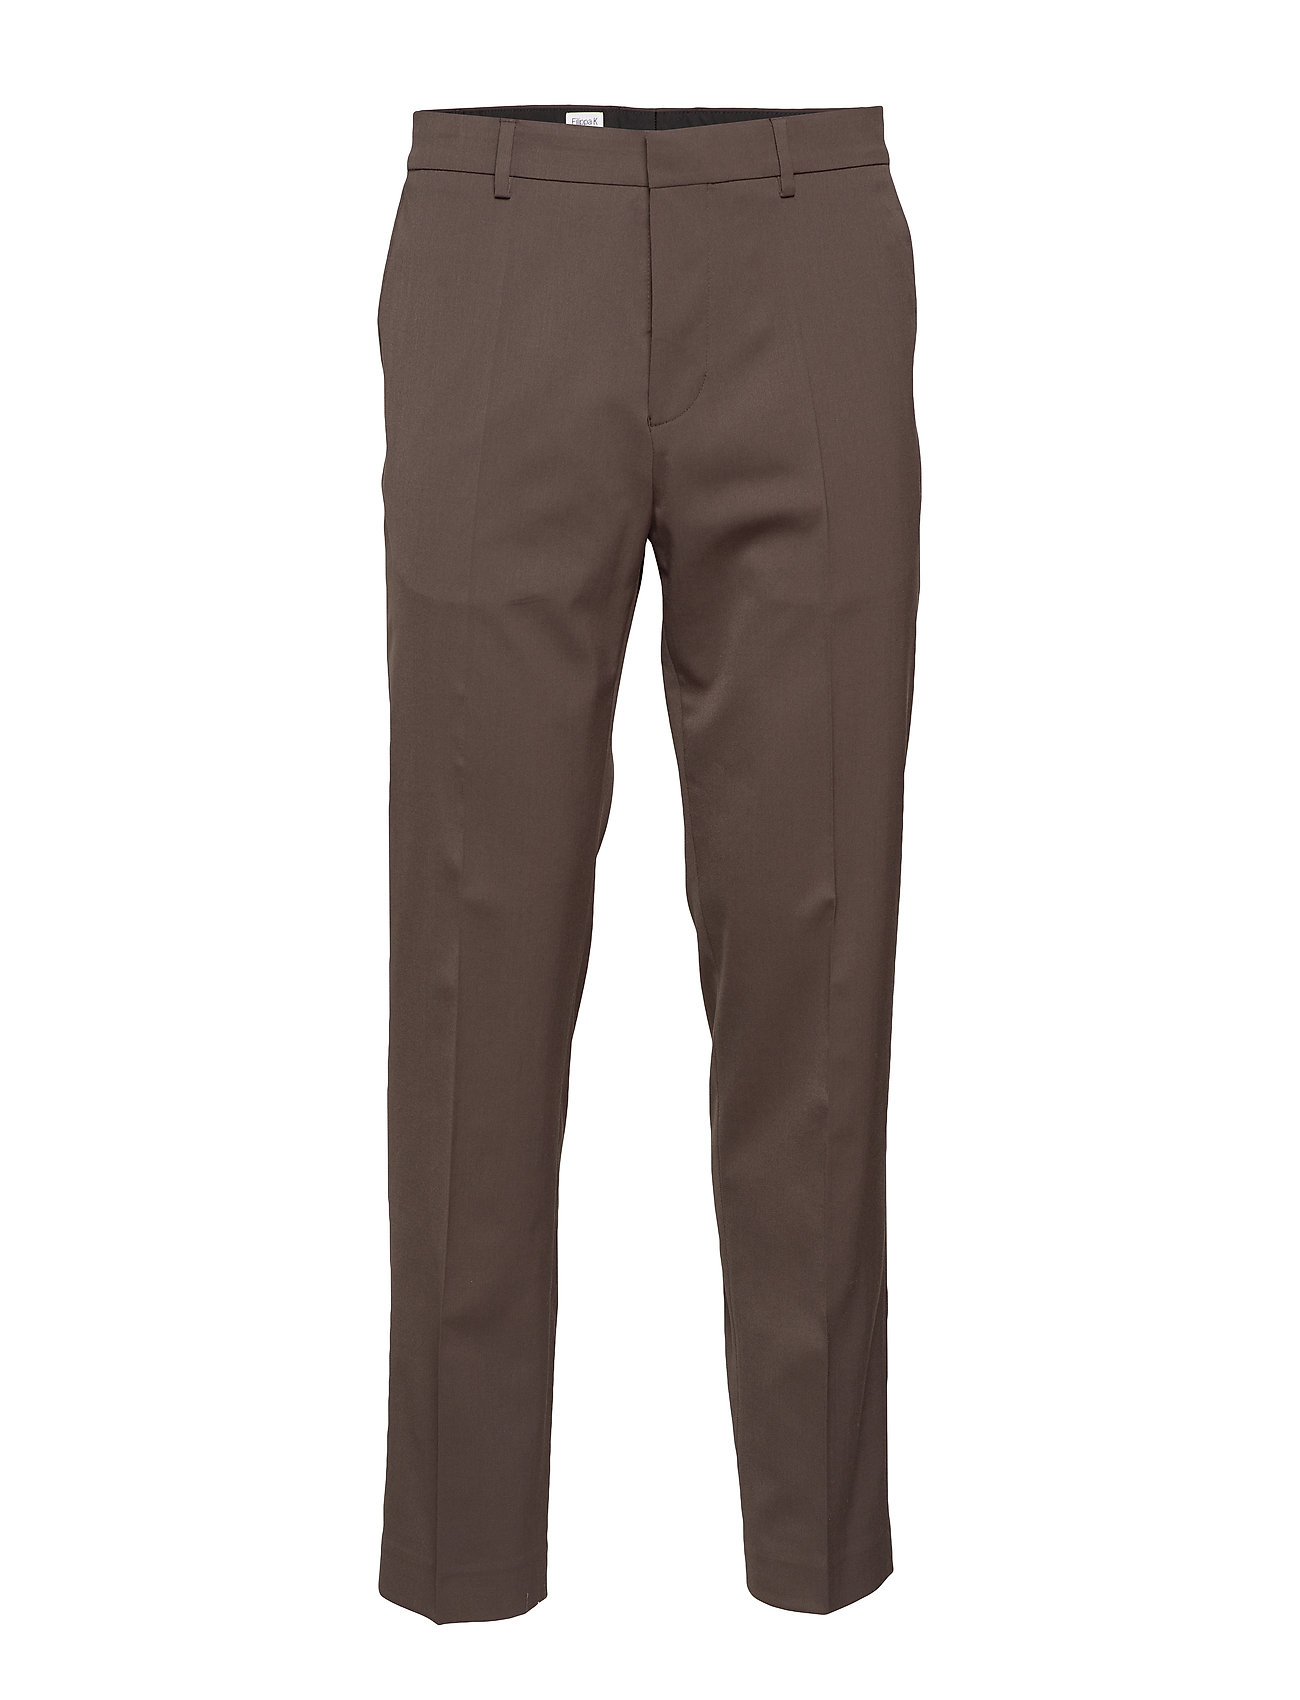 Filippa K M. Justin Wool Trouser - DARK OAK